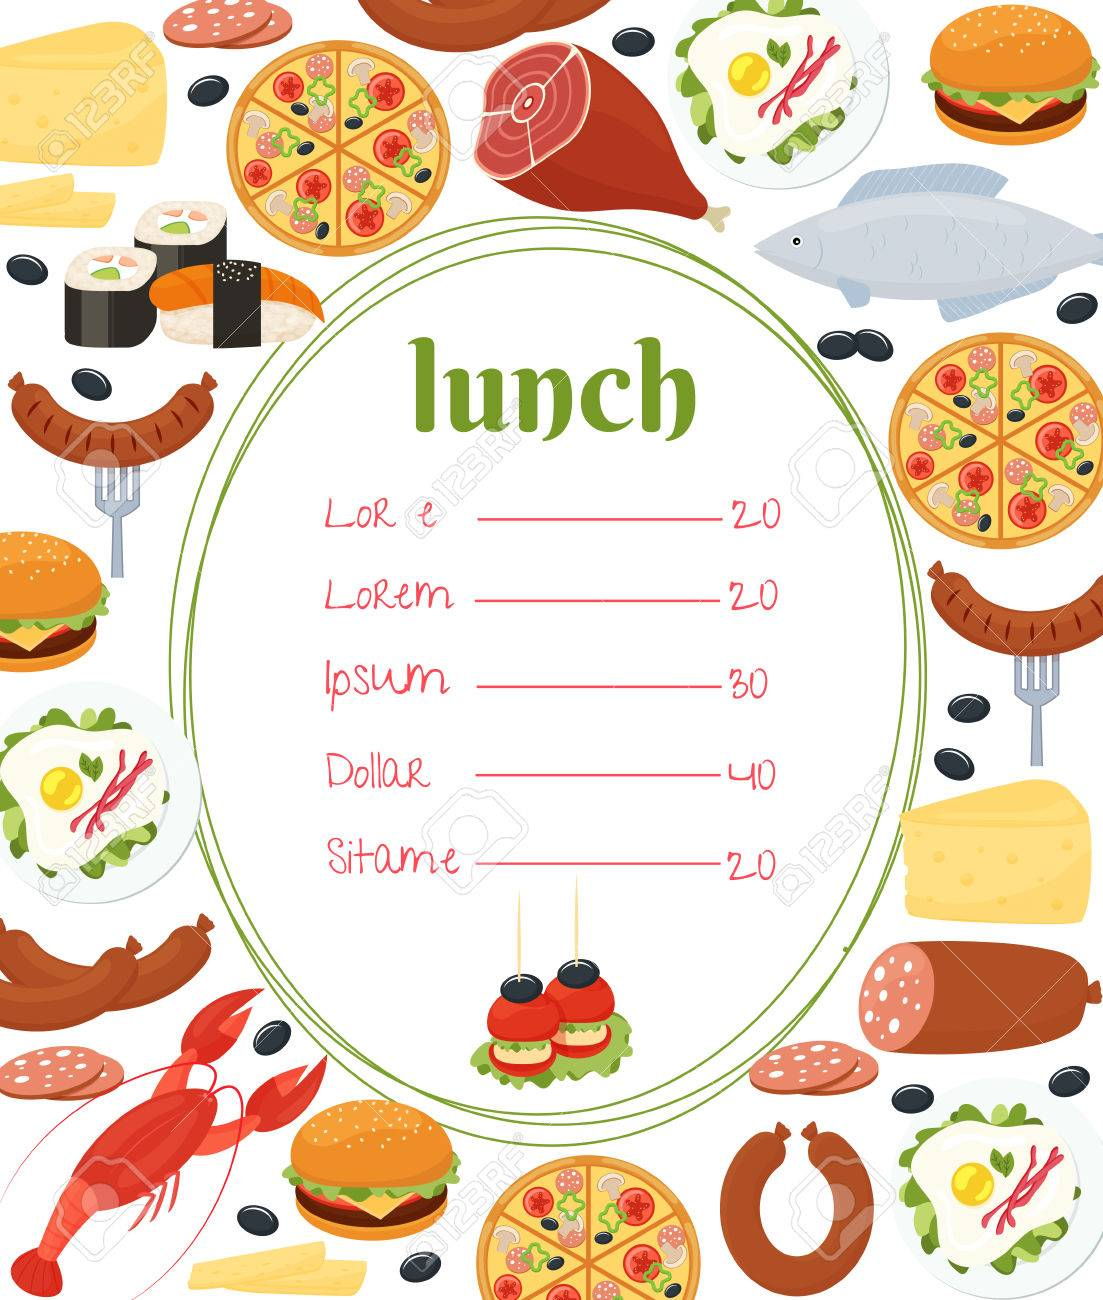 Lunch Menu Template Royalty Free Cliparts Vectors And Stock